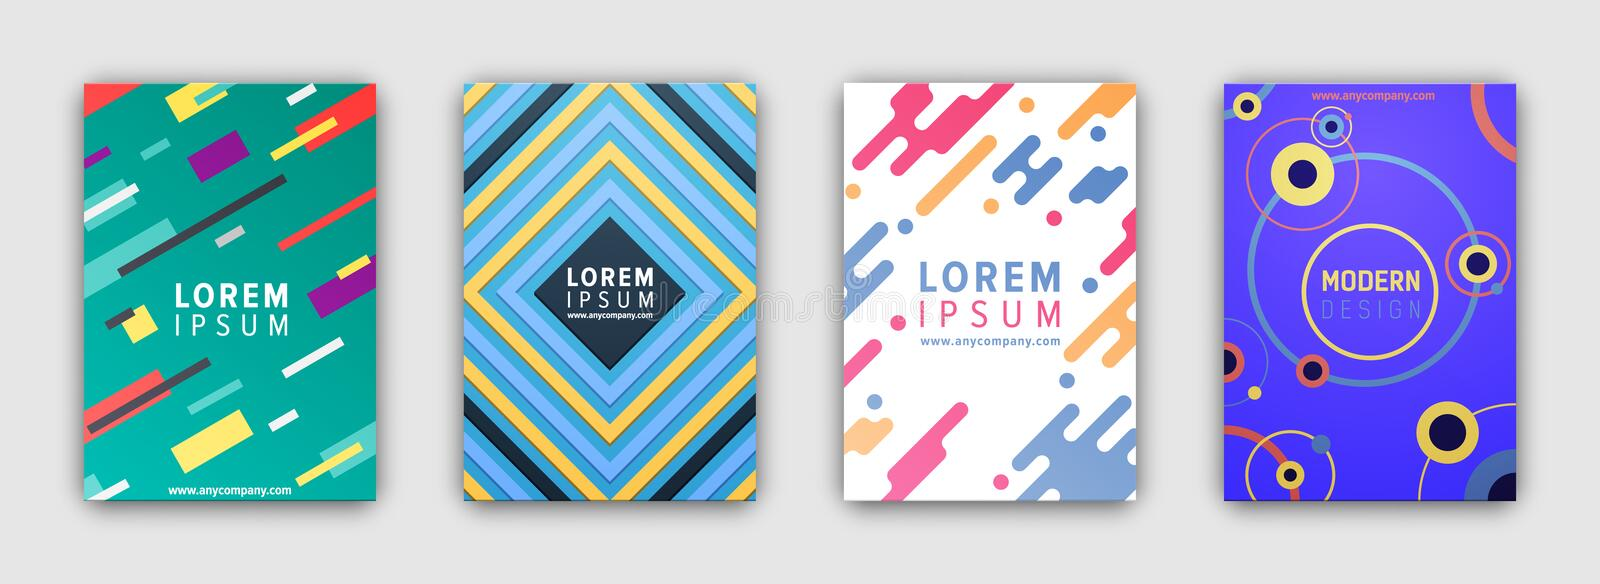 Four Colorful Covers Collection in Flat Design royalty free illustration